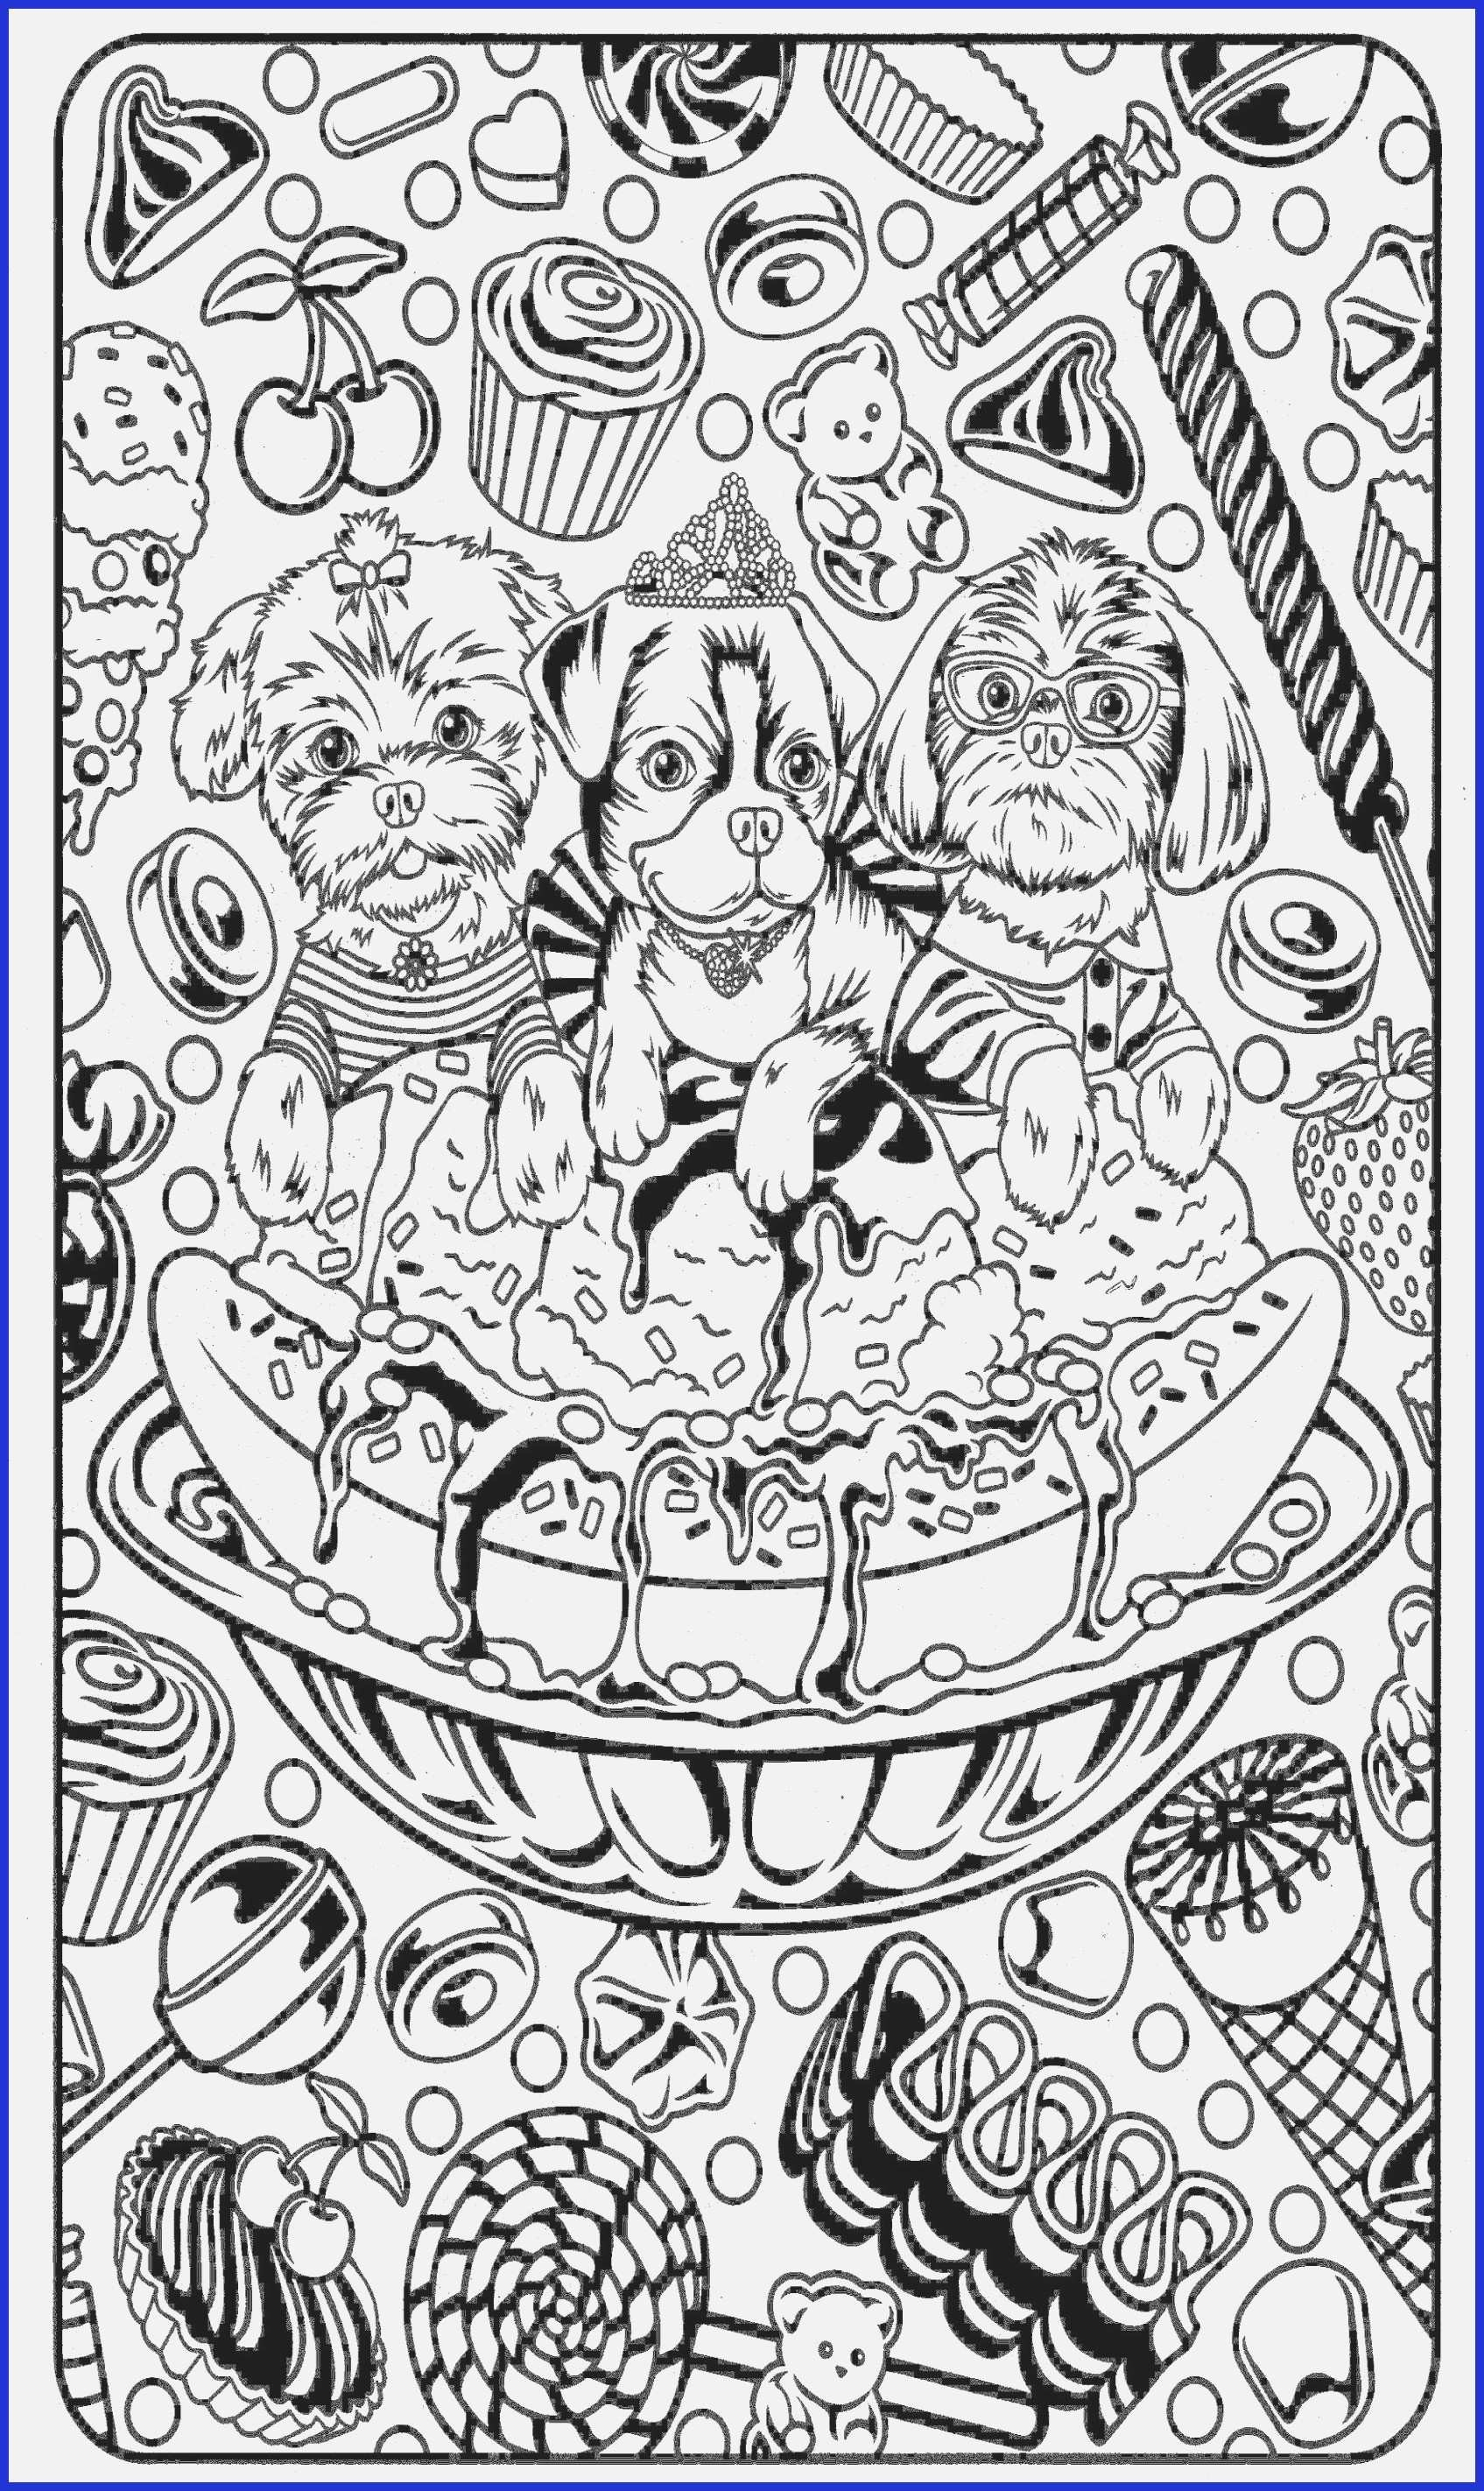 Coloring Ideas : Summer Coloring Pages To Print Inspirational Fors - Free Printable Summer Coloring Pages For Adults